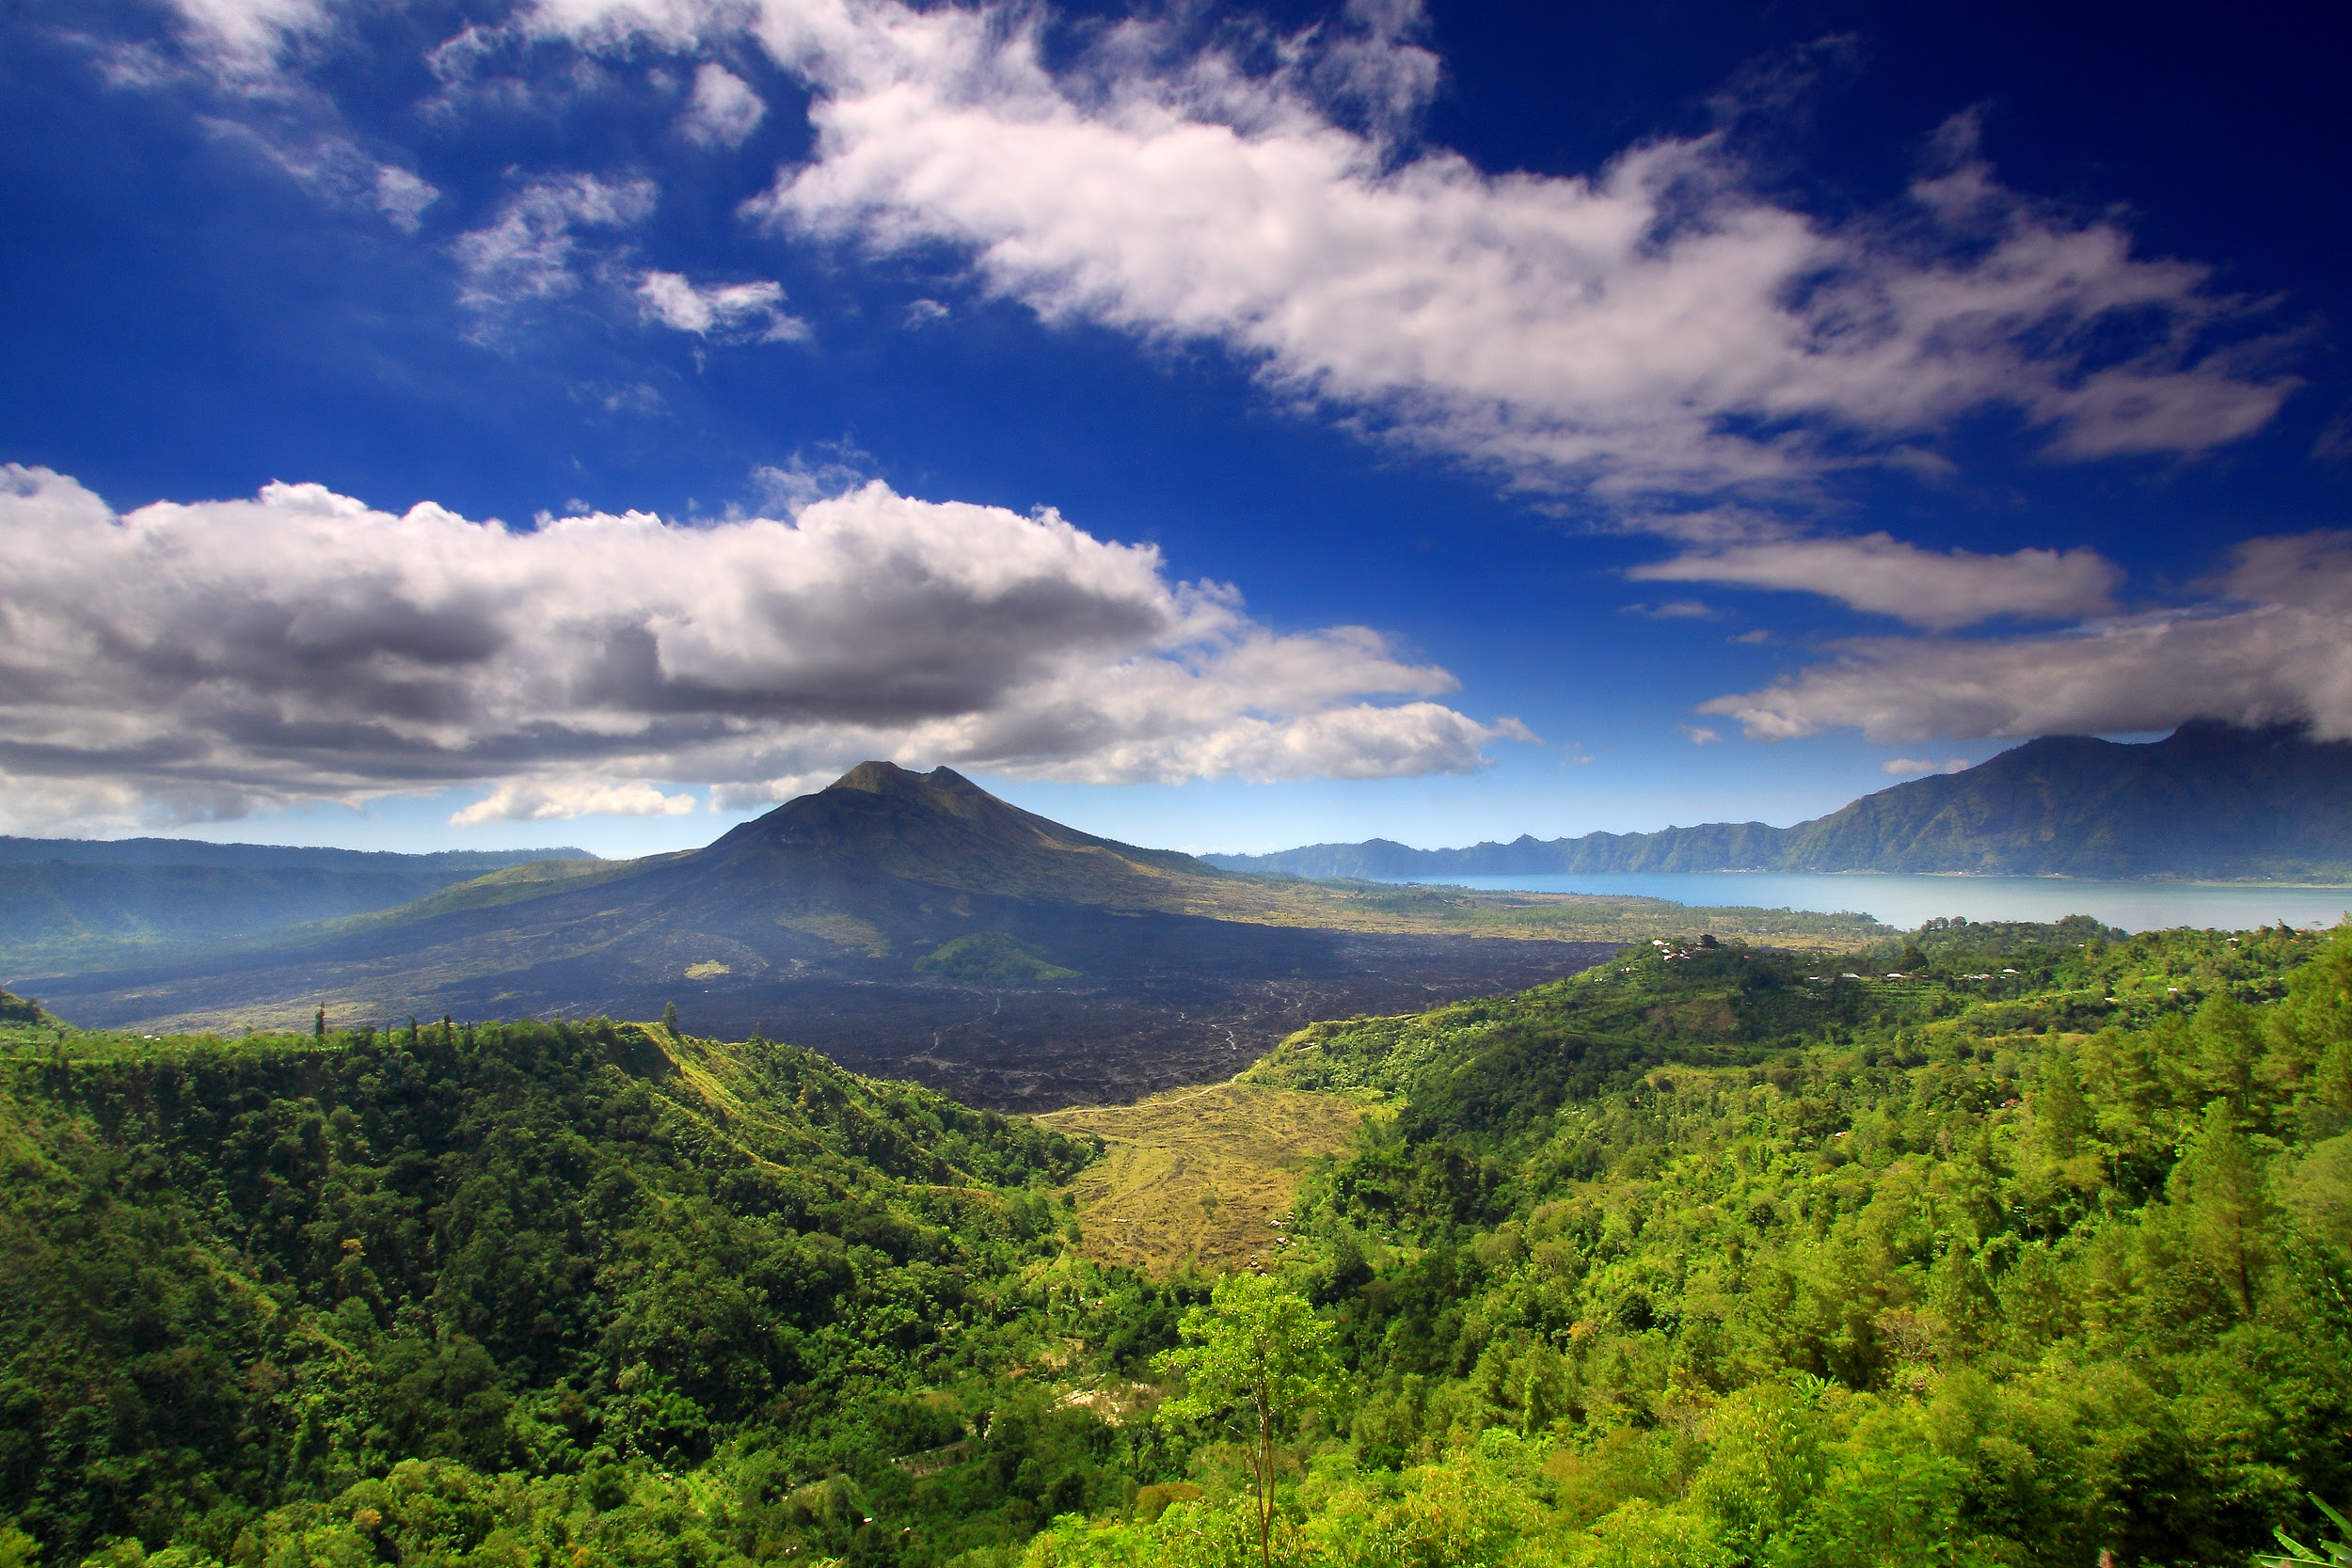 Mount Batur Bali Island Location Map,Location Map of Mount Batur Bali Island,Mount Batur Bali Island accommodation destinations attractions hotels map reviews photos pictures,mount batur last eruption hike temperature climb weather